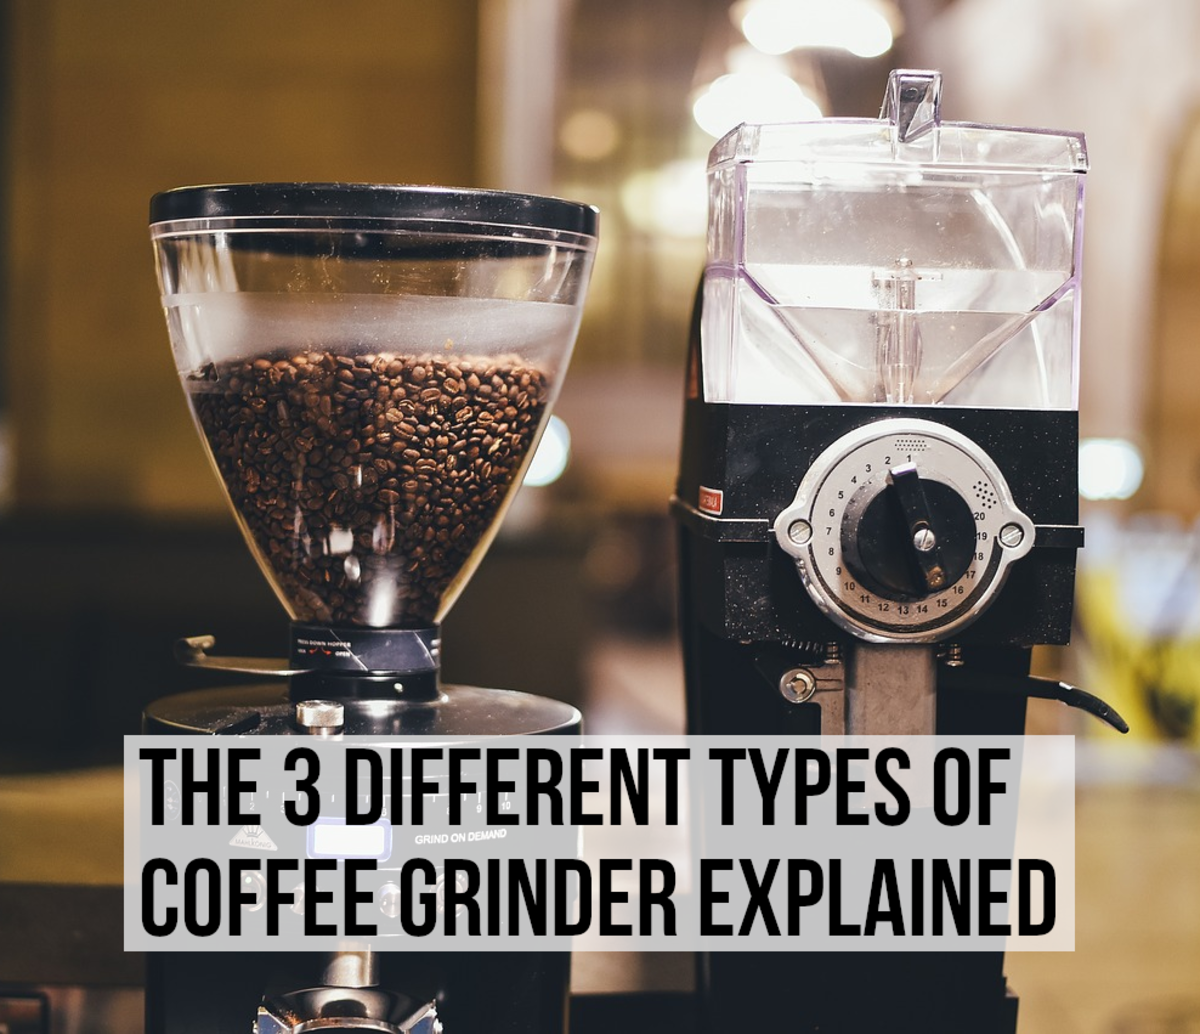 This article explains the different types of coffee grinders and gives examples.